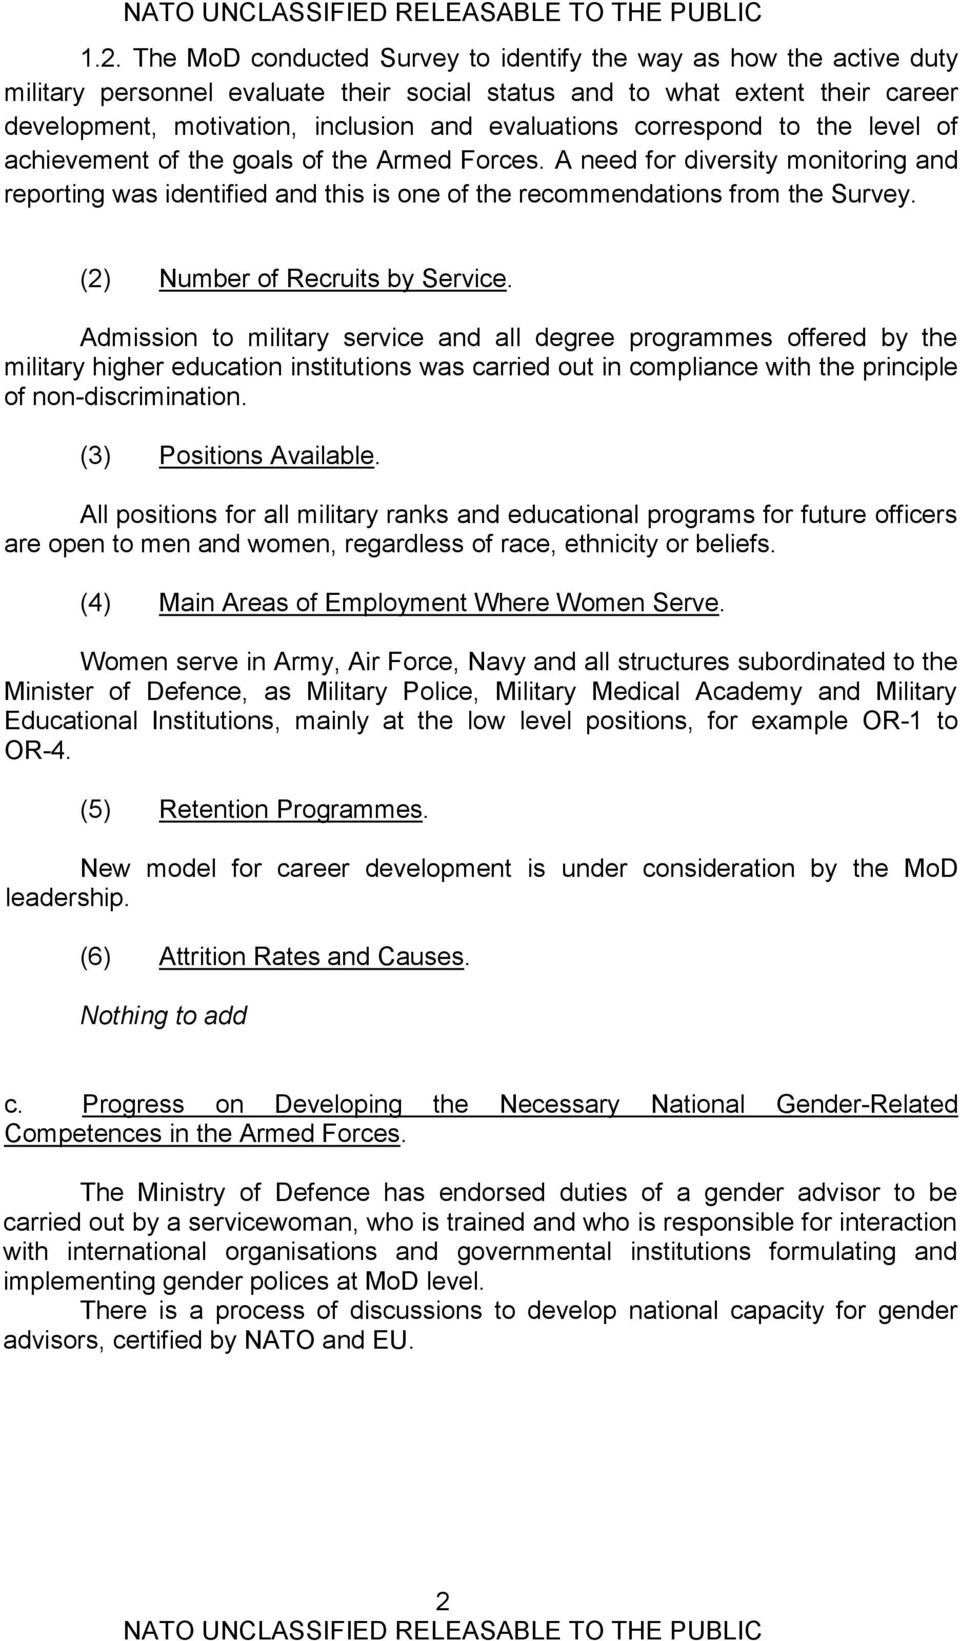 (2) of Recruits by Service. Admission to military service all degree programmes offered by the military education institutions was carried out in compliance with the principle of non-discrimination.